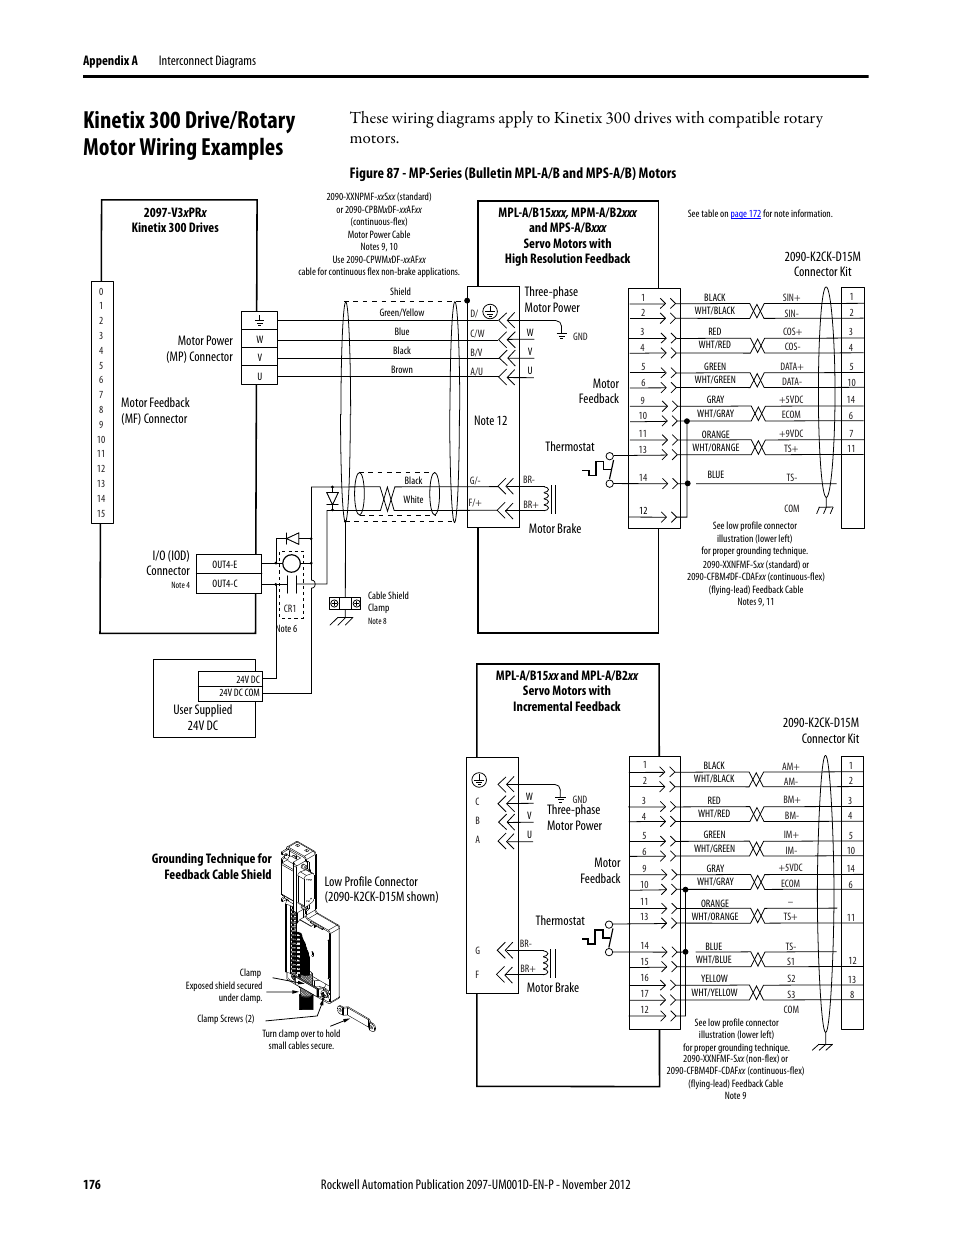 Kinetix 300 drive/rotary motor wiring examples | Rockwell ...